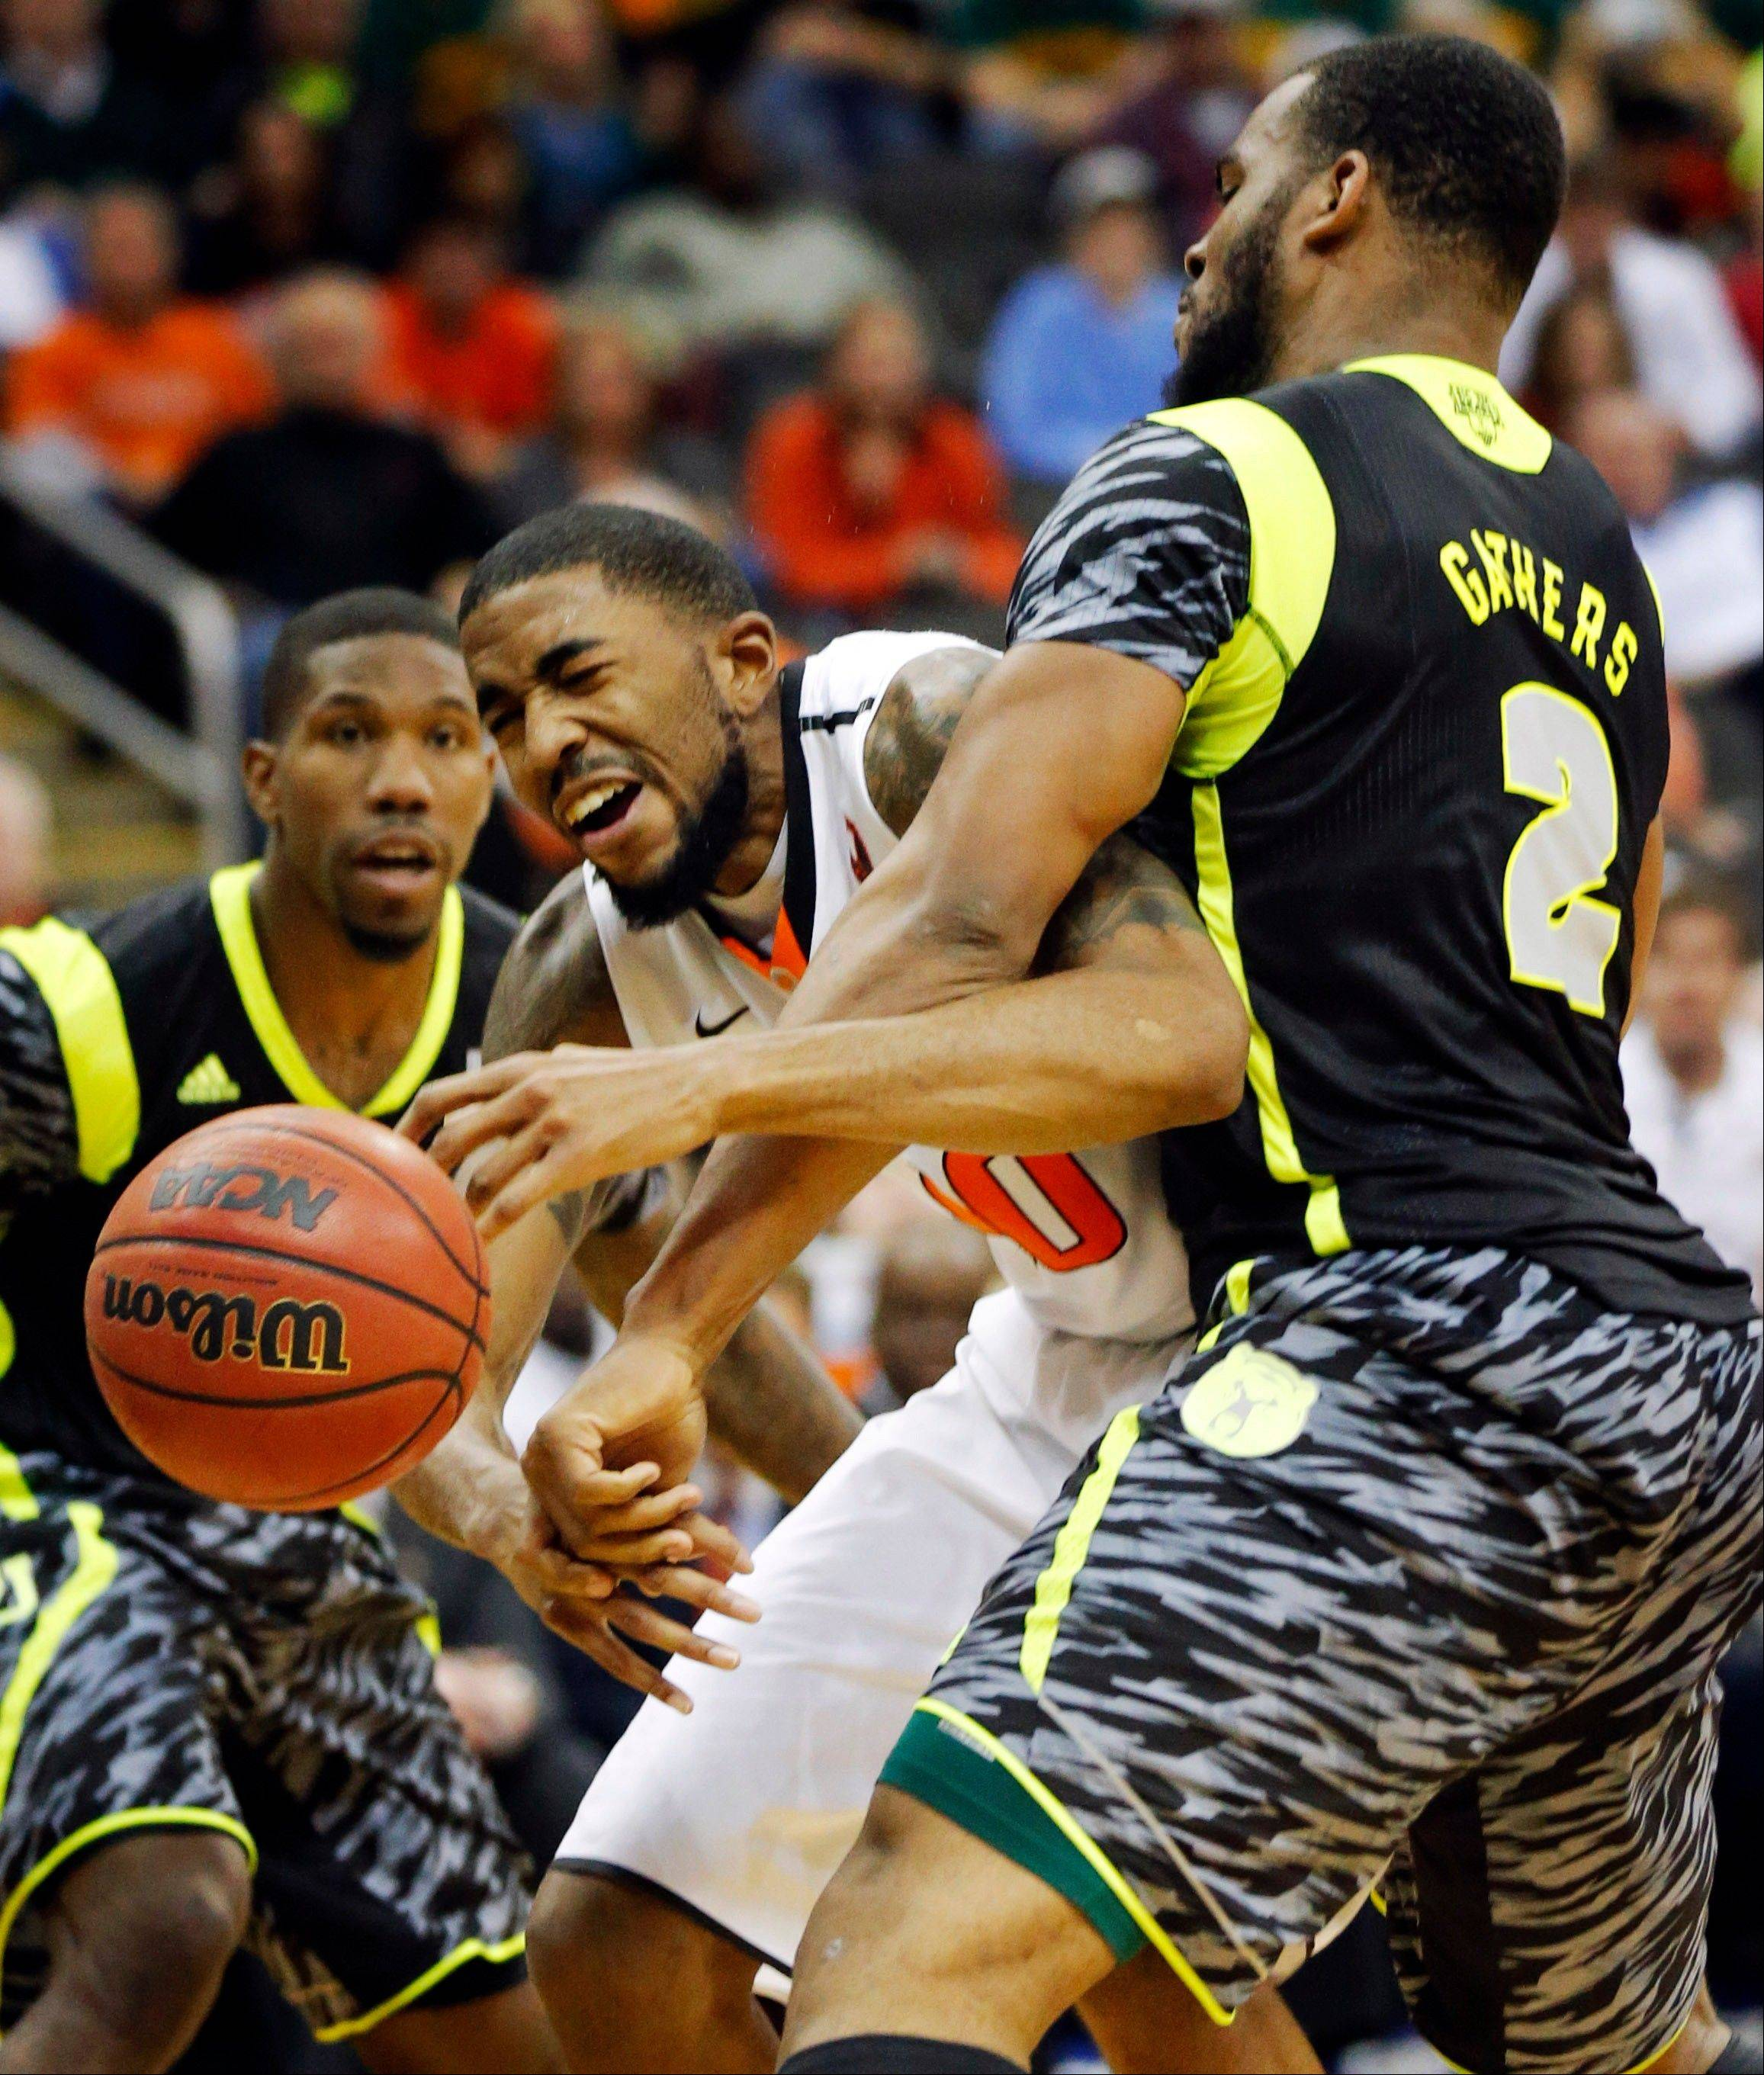 This March 14 photo shows Oklahoma State playing Baylor in their Big 12 tournament in Kansas City, Mo. The neon-colored jerseys and camouflage-covered shorts debuted by six teams in their post-season conference championships ahead of the NCAA men's basketball tournament weren't well received in the press and social media.